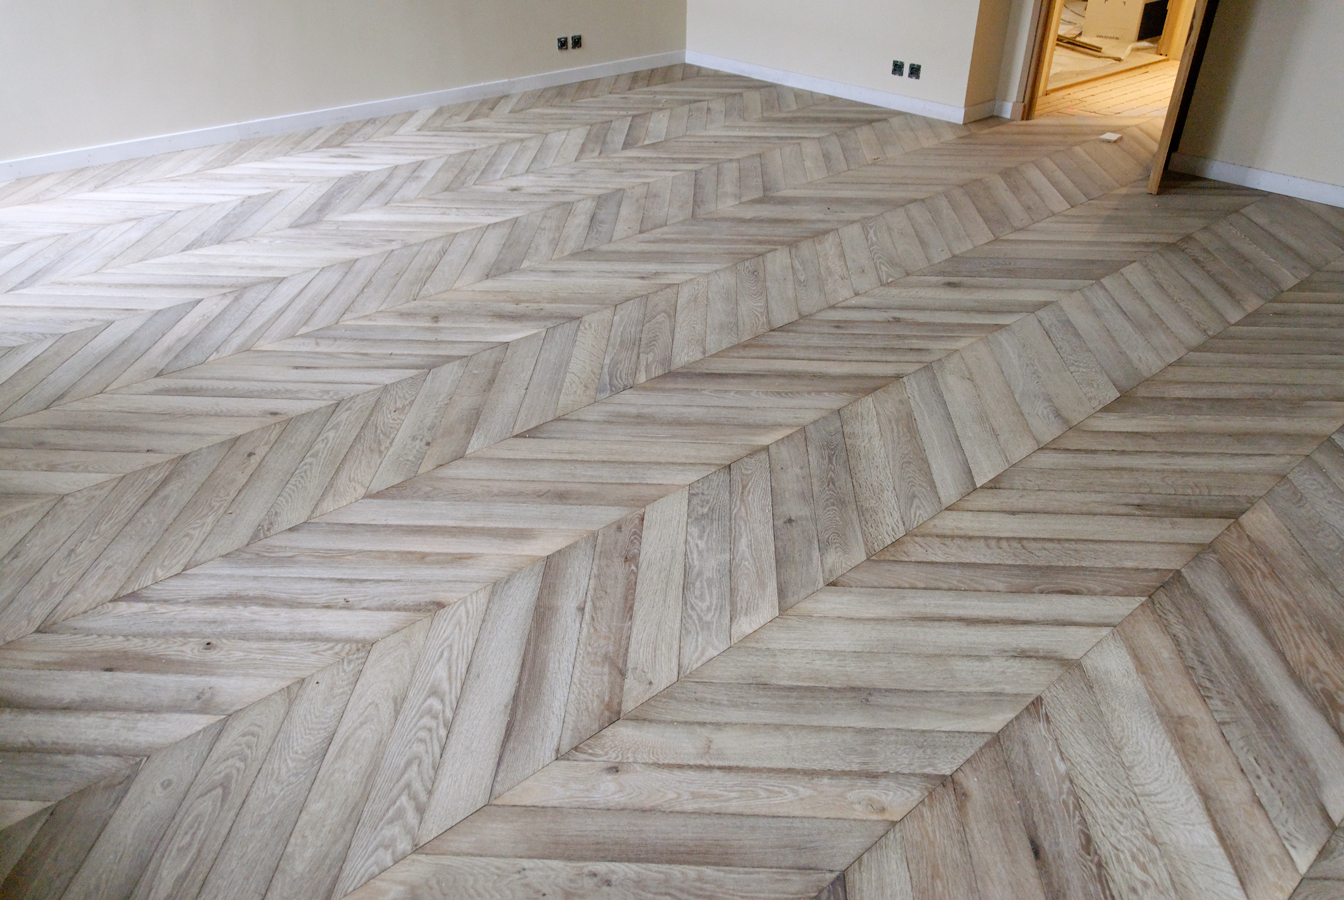 Exemple n°1 parquet Point de Hongrie